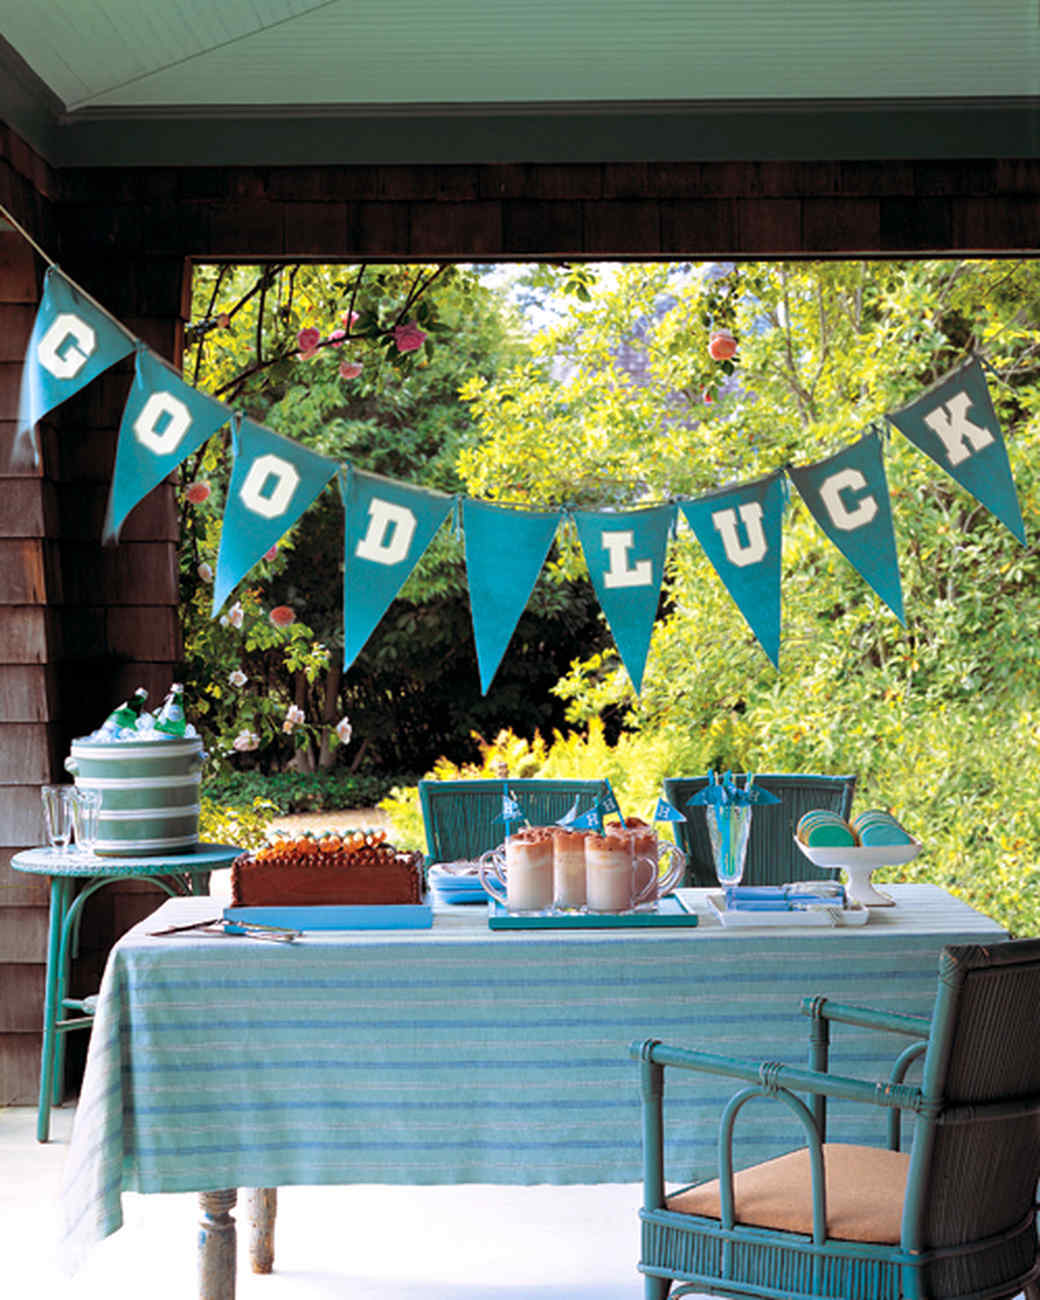 Graduation Party Crafts and Decorations | Martha Stewart